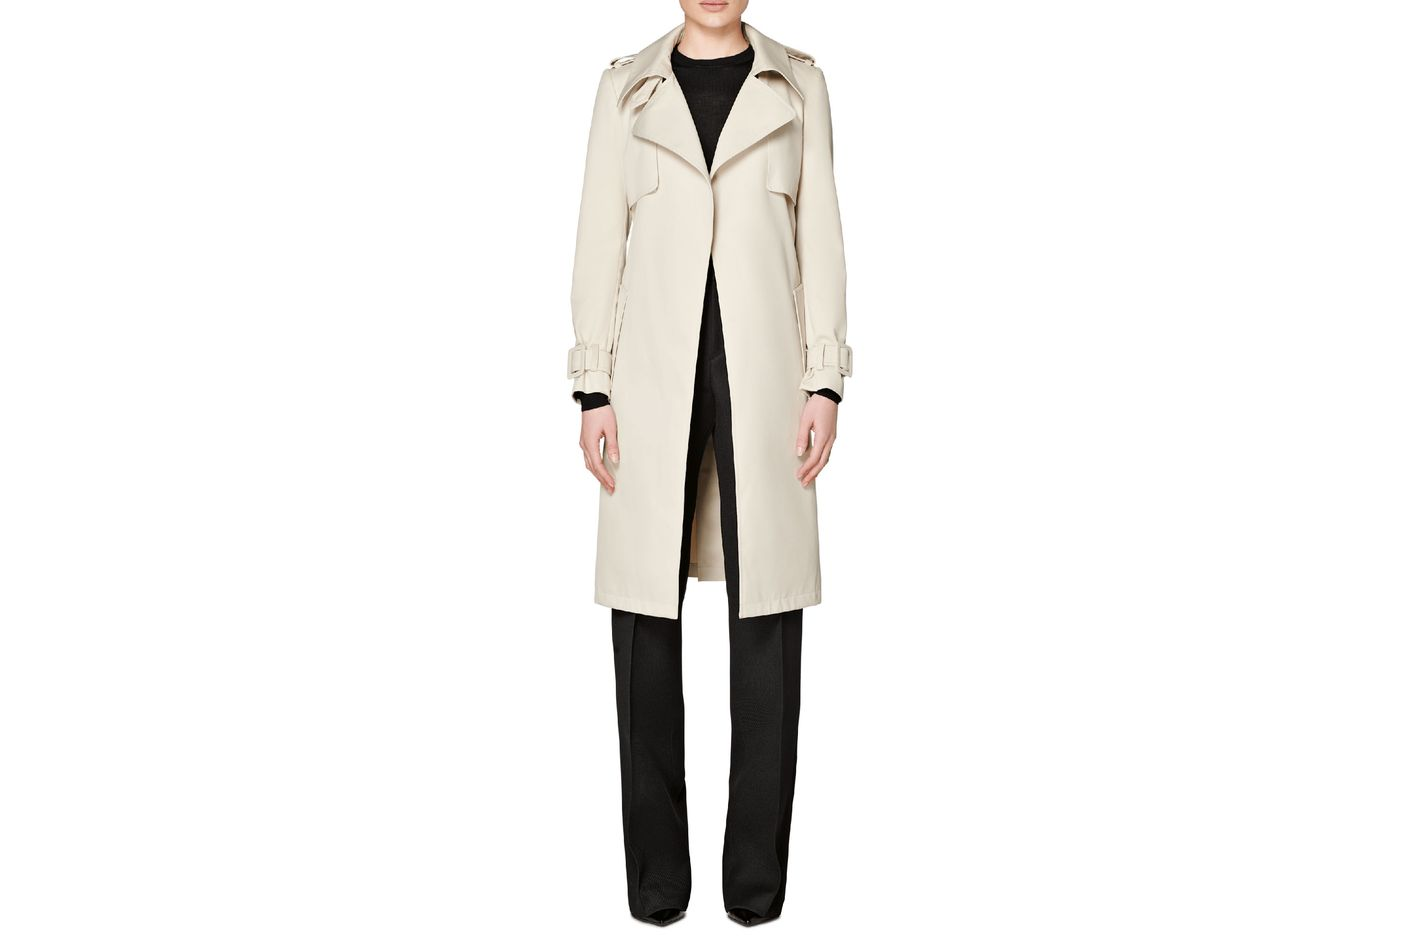 Suistudio Dwight Beige Trench Coat